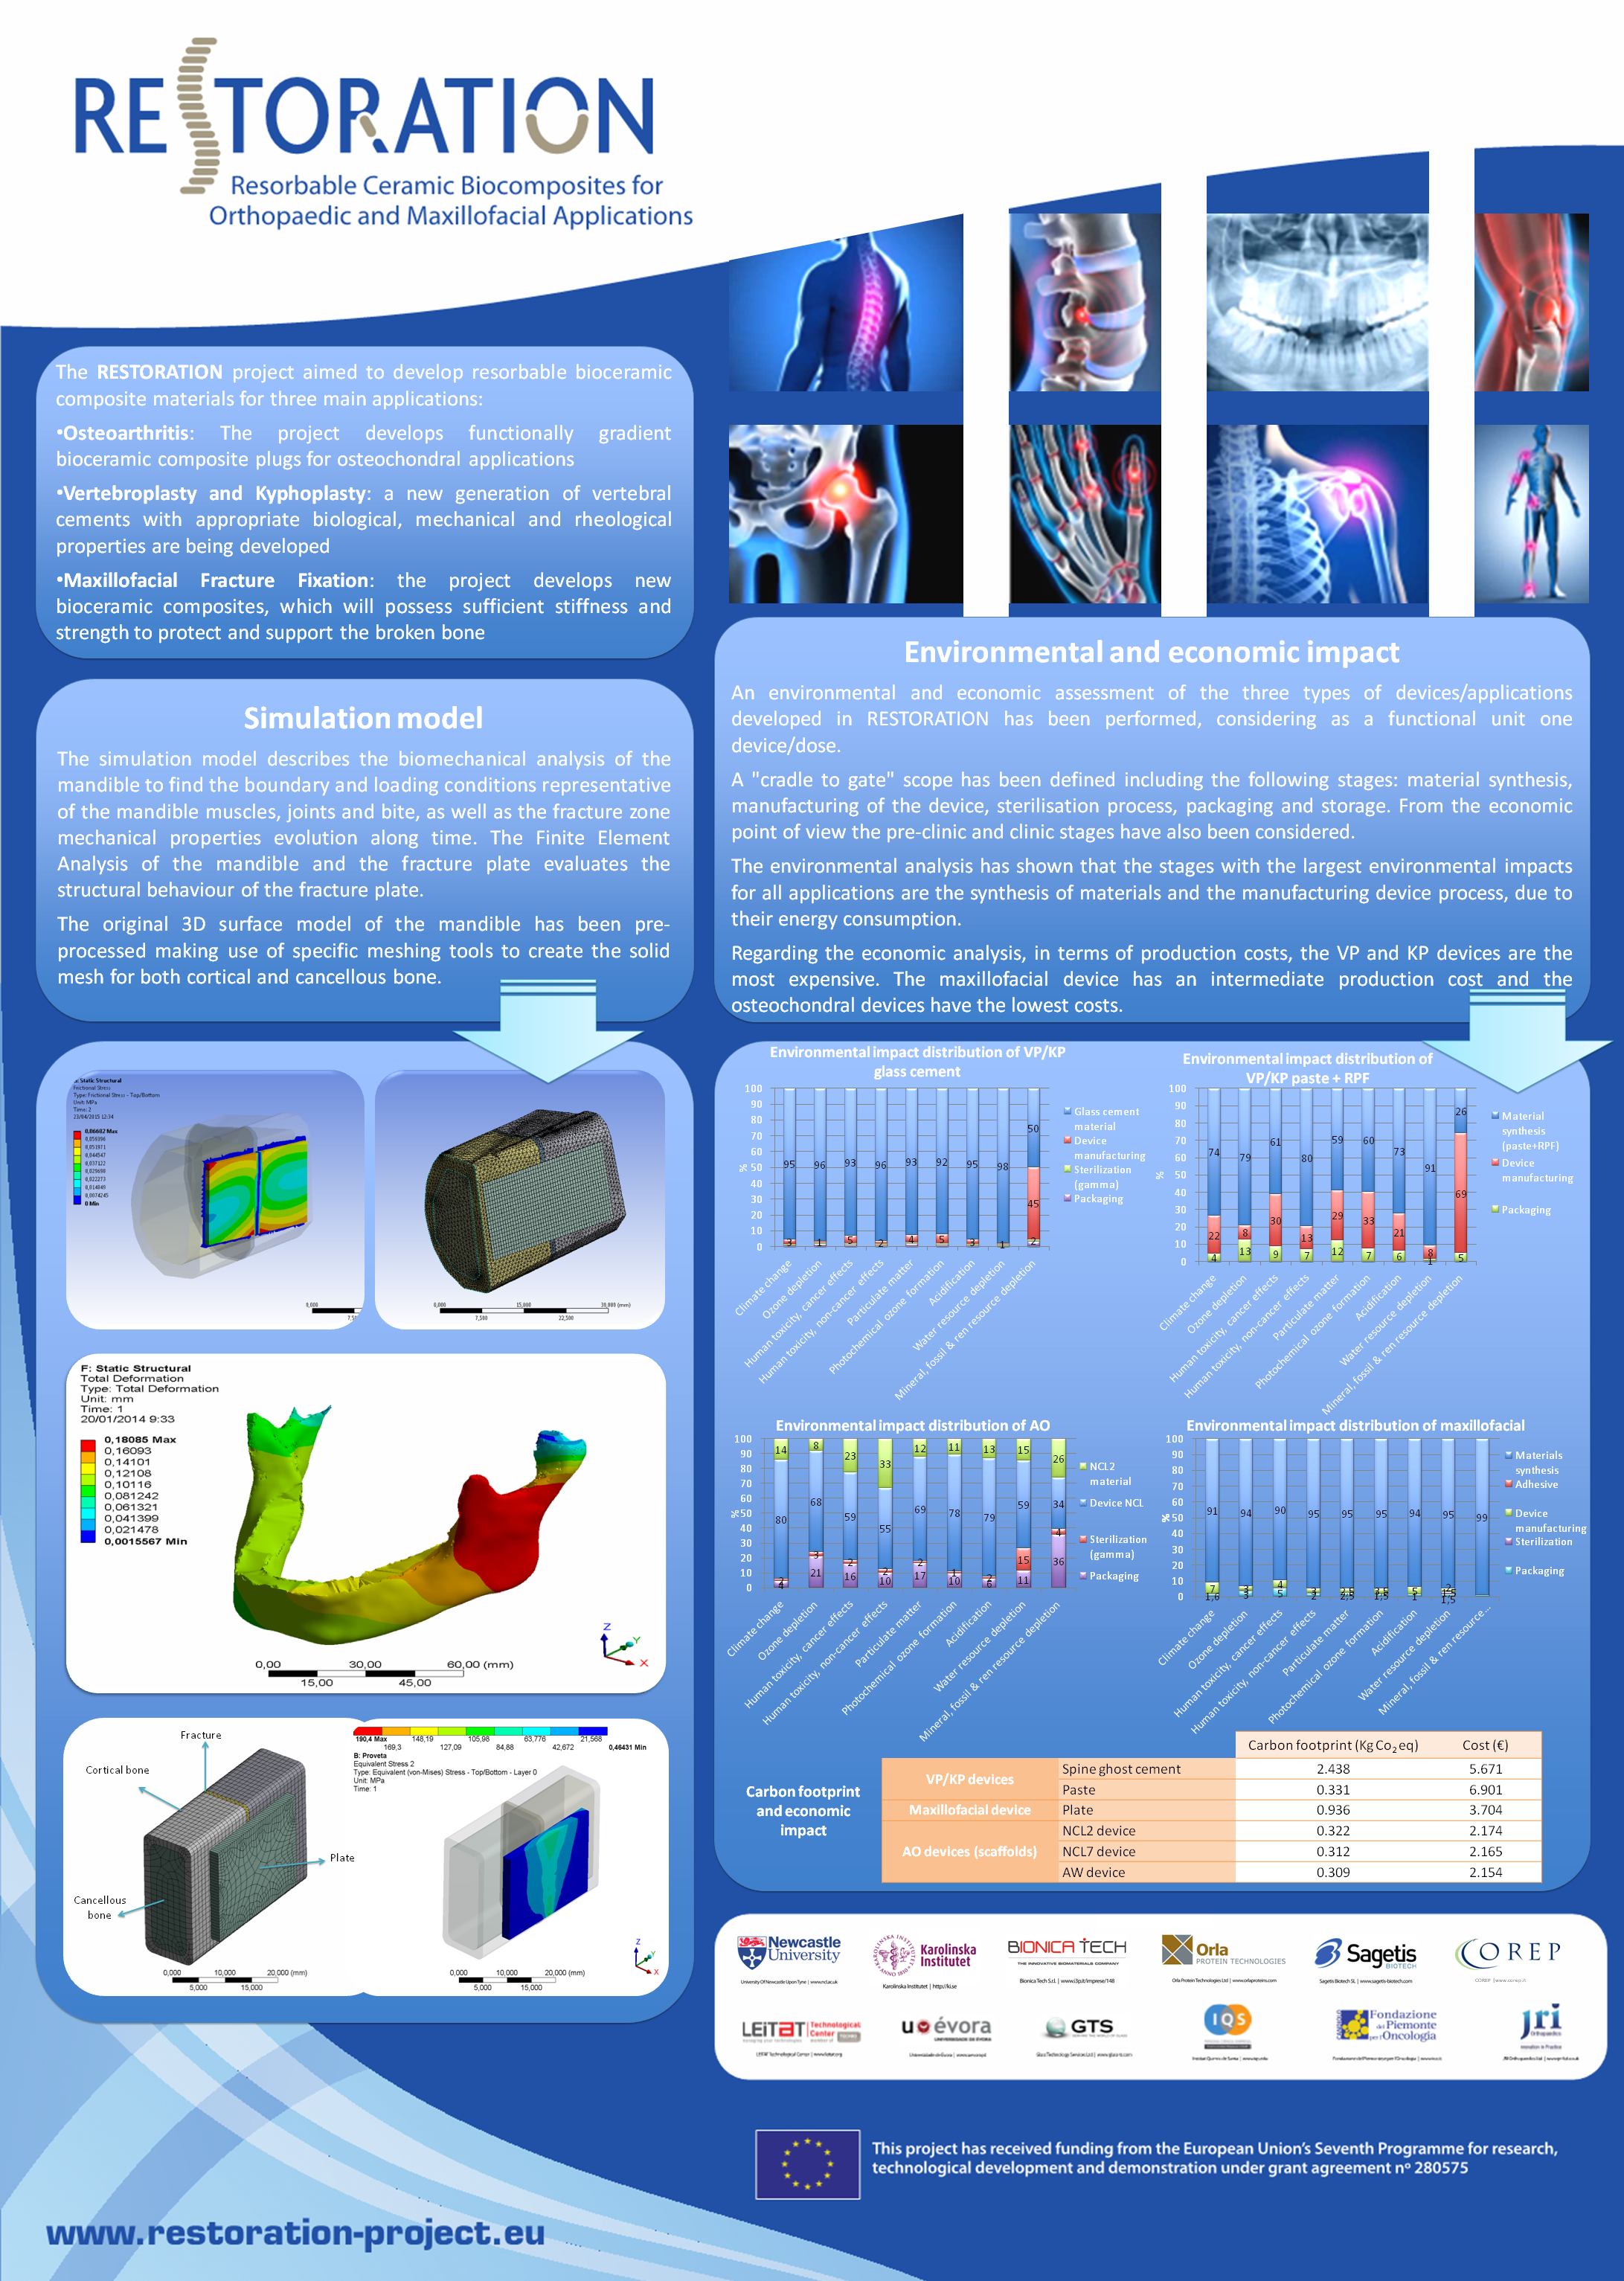 RESTORATION Poster Leitat LCA and Simulation